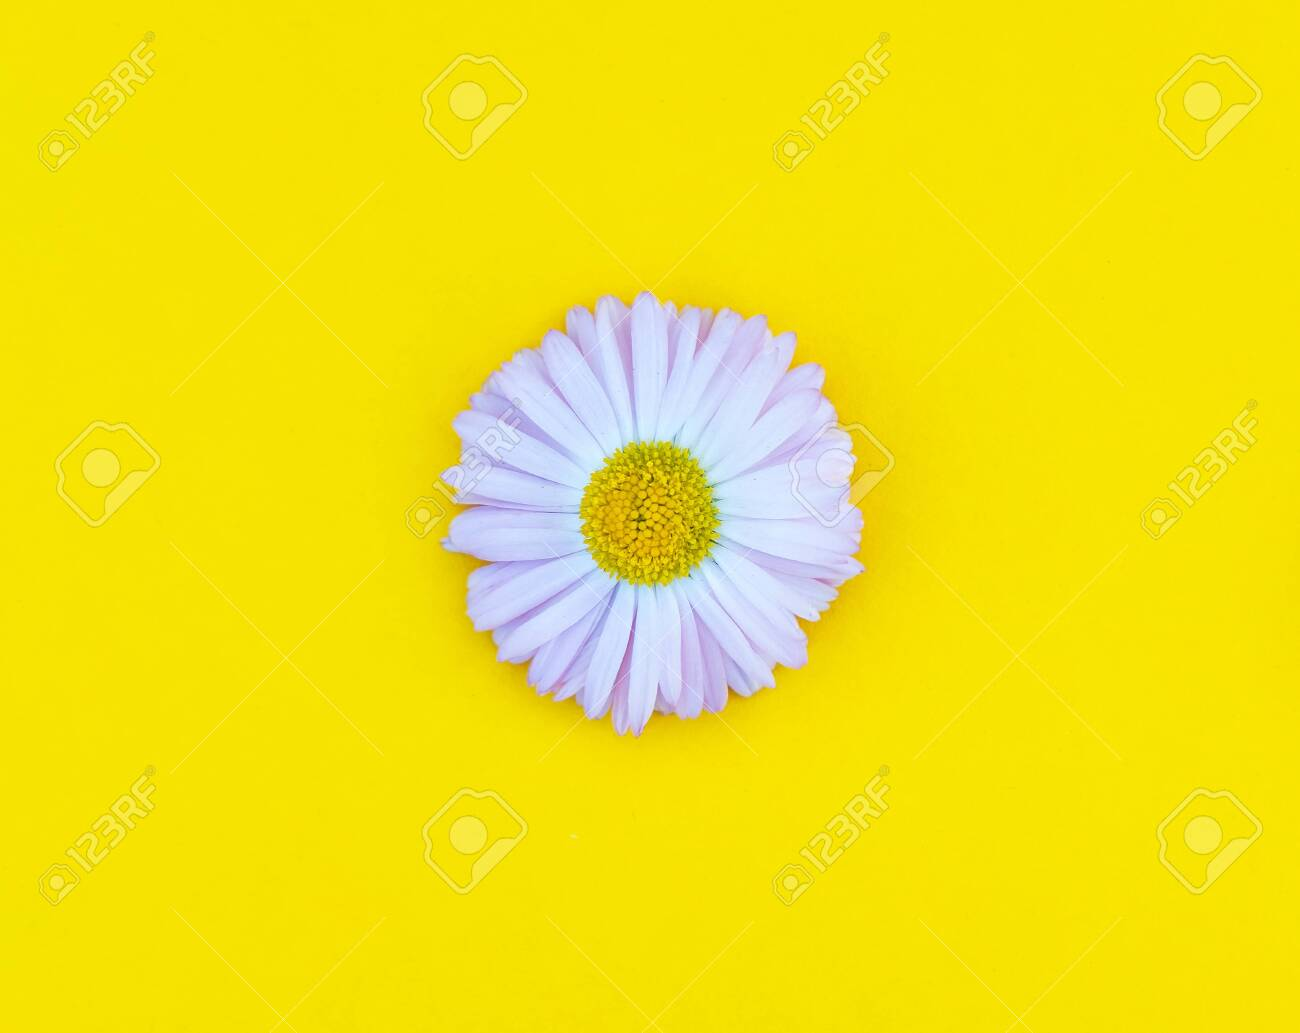 Spring And Summer Flower Isolated Flat Lay Daisy In Bloom On